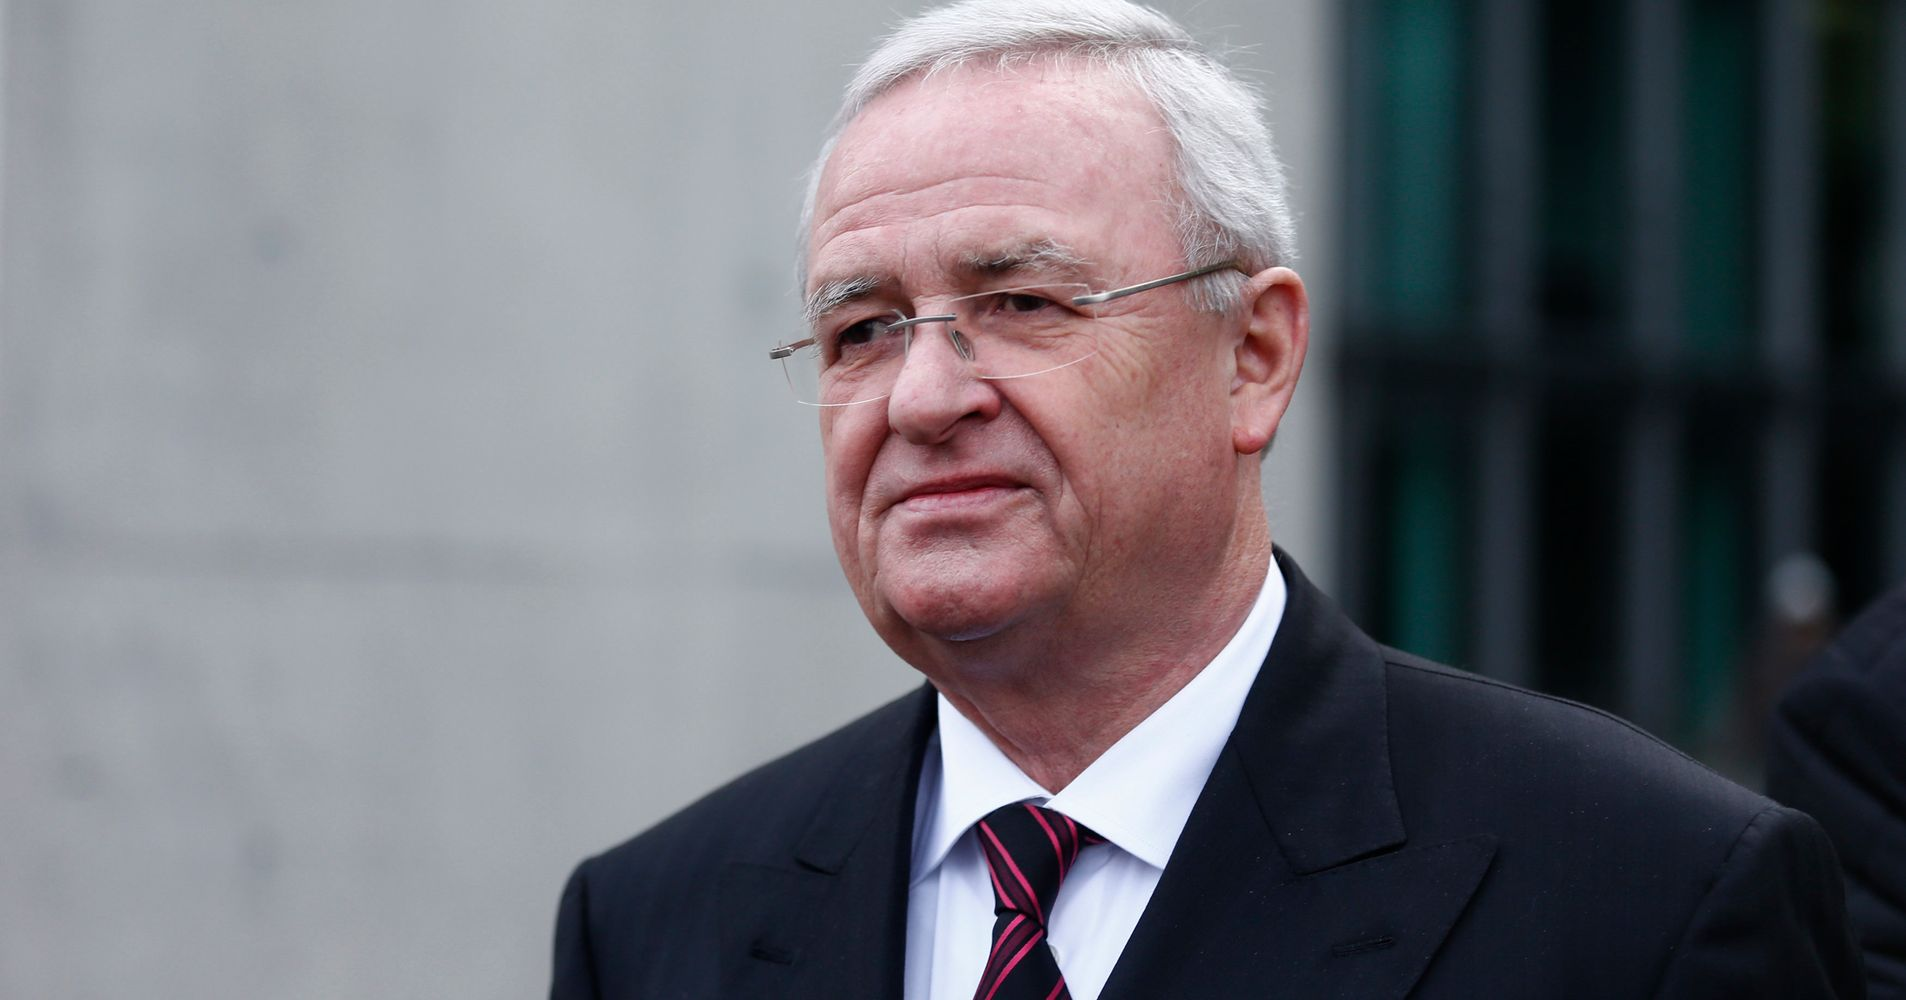 Ex volkswagen ceo charged in us over emissions cheating scandal ex volkswagen ceo charged in us over emissions cheating scandal huffpost fandeluxe Image collections